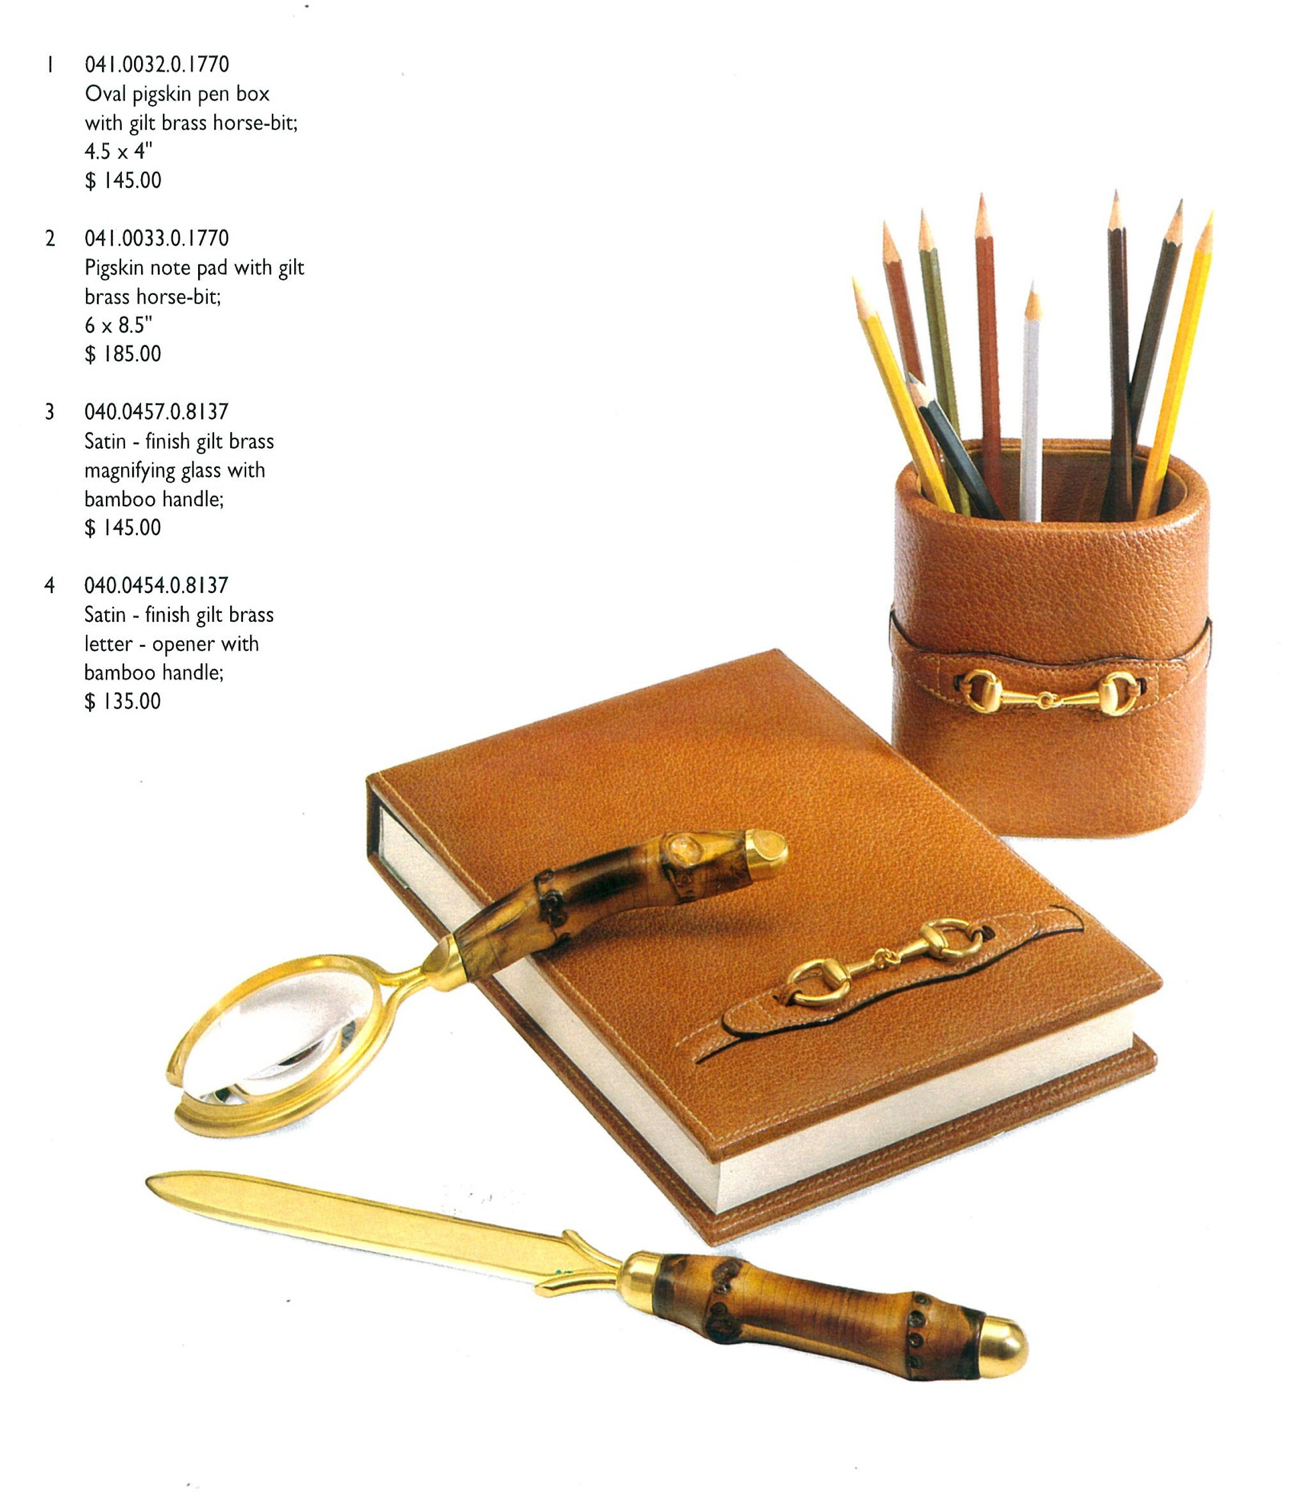 Gucci Housewares Desk Leather Accesories 1995 featuring Pigskin Pencup, Desk Pad, Magnifying Glass and Letter Opener with Bamboo Handle